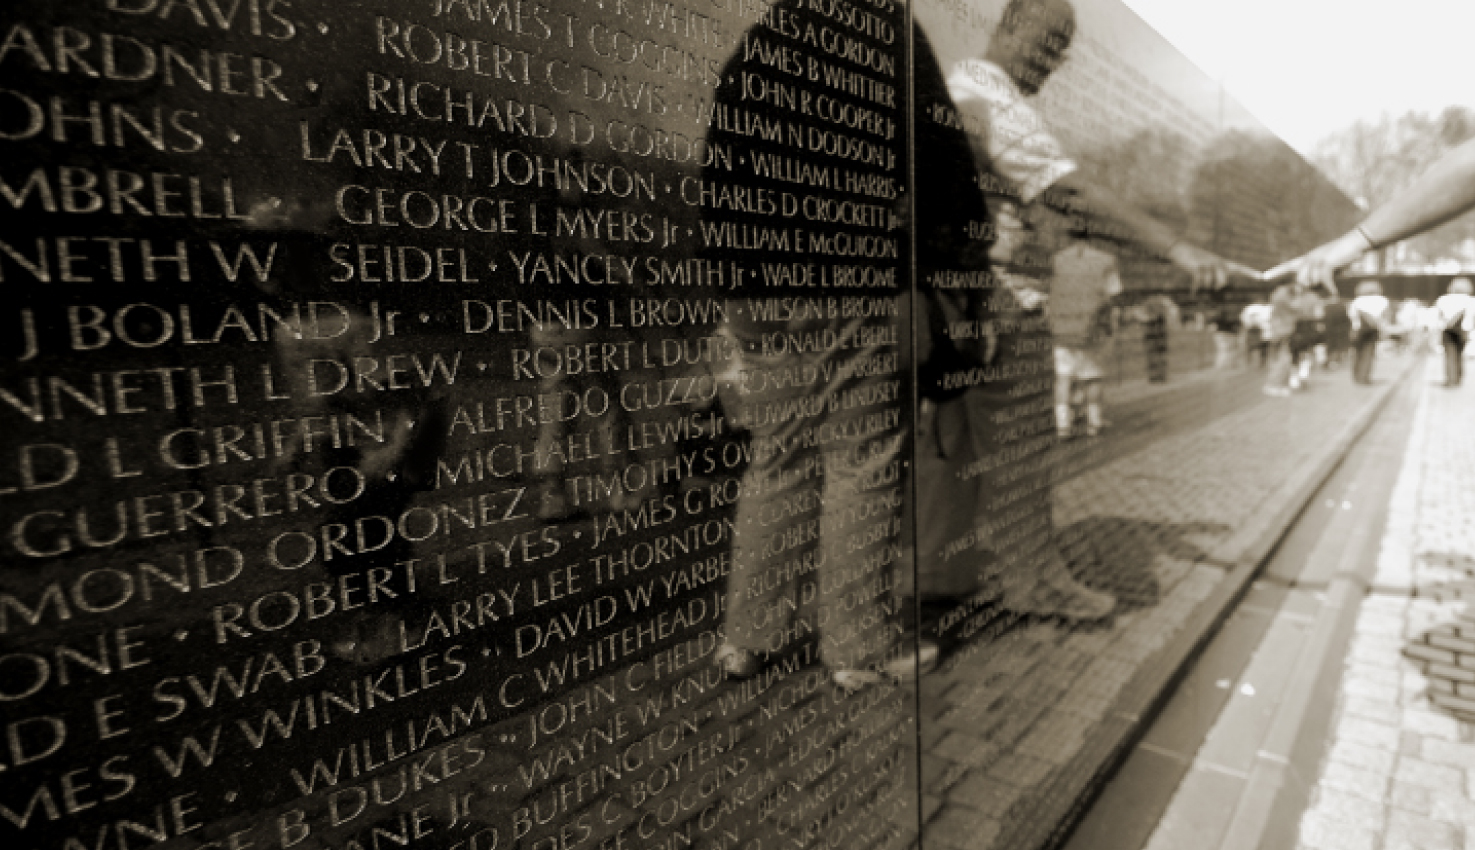 Vietnam War Memorial Image